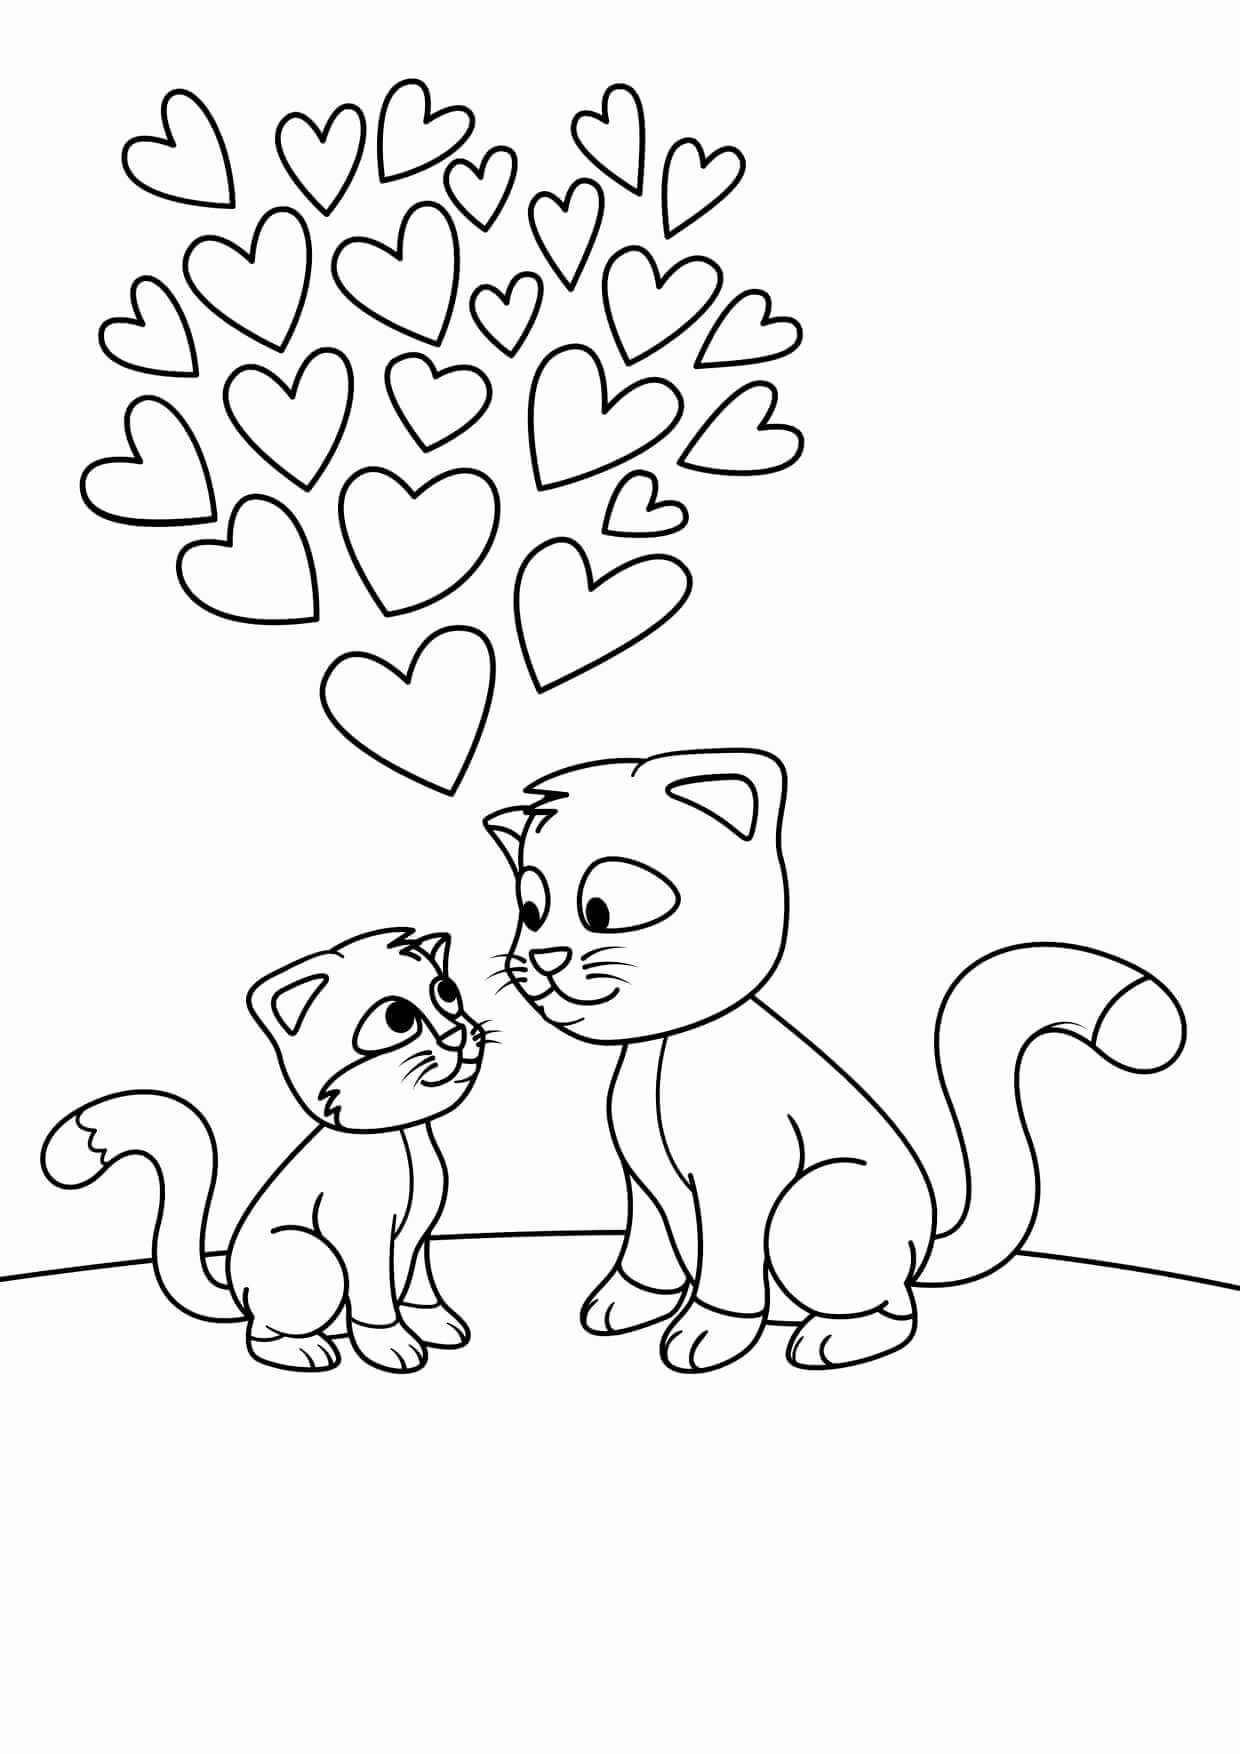 30 Cartoon Coloring Pages Printable In